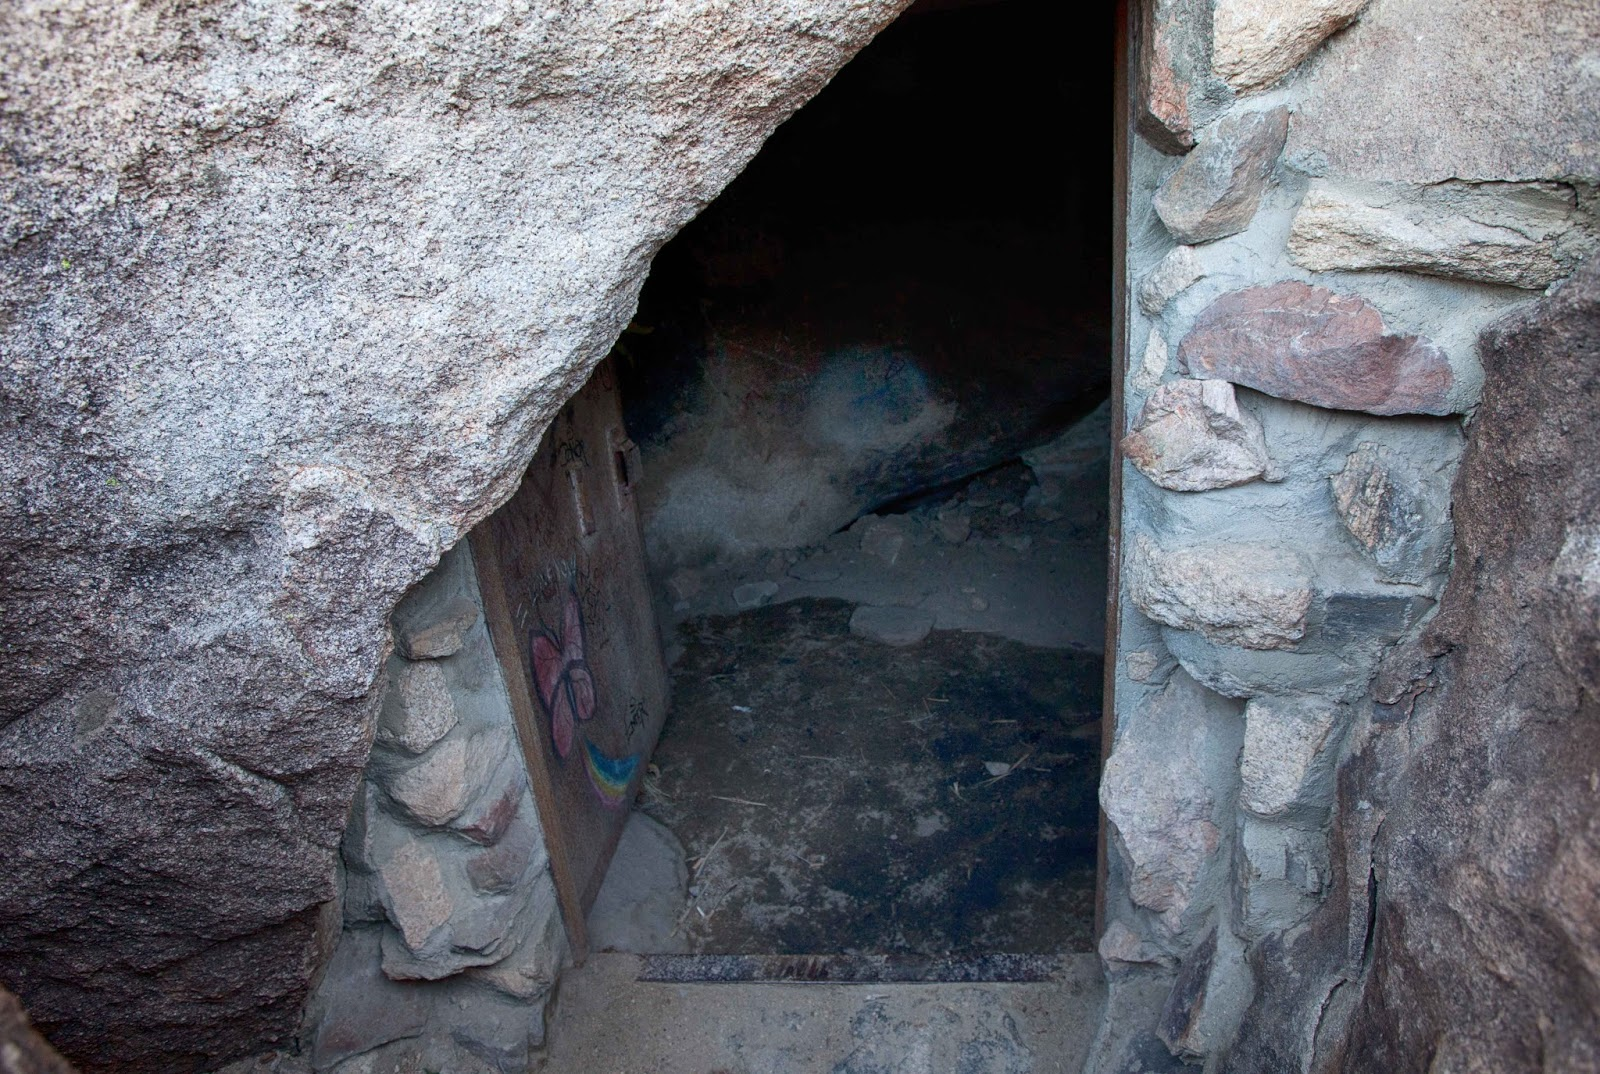 Charmant ... The The Rocks Guarding The Entrance, You Can See Rock And Mortar Steps  And The Heavy Iron Door. Bill Keys Put A Lot Of Work Into Building This Cave !!